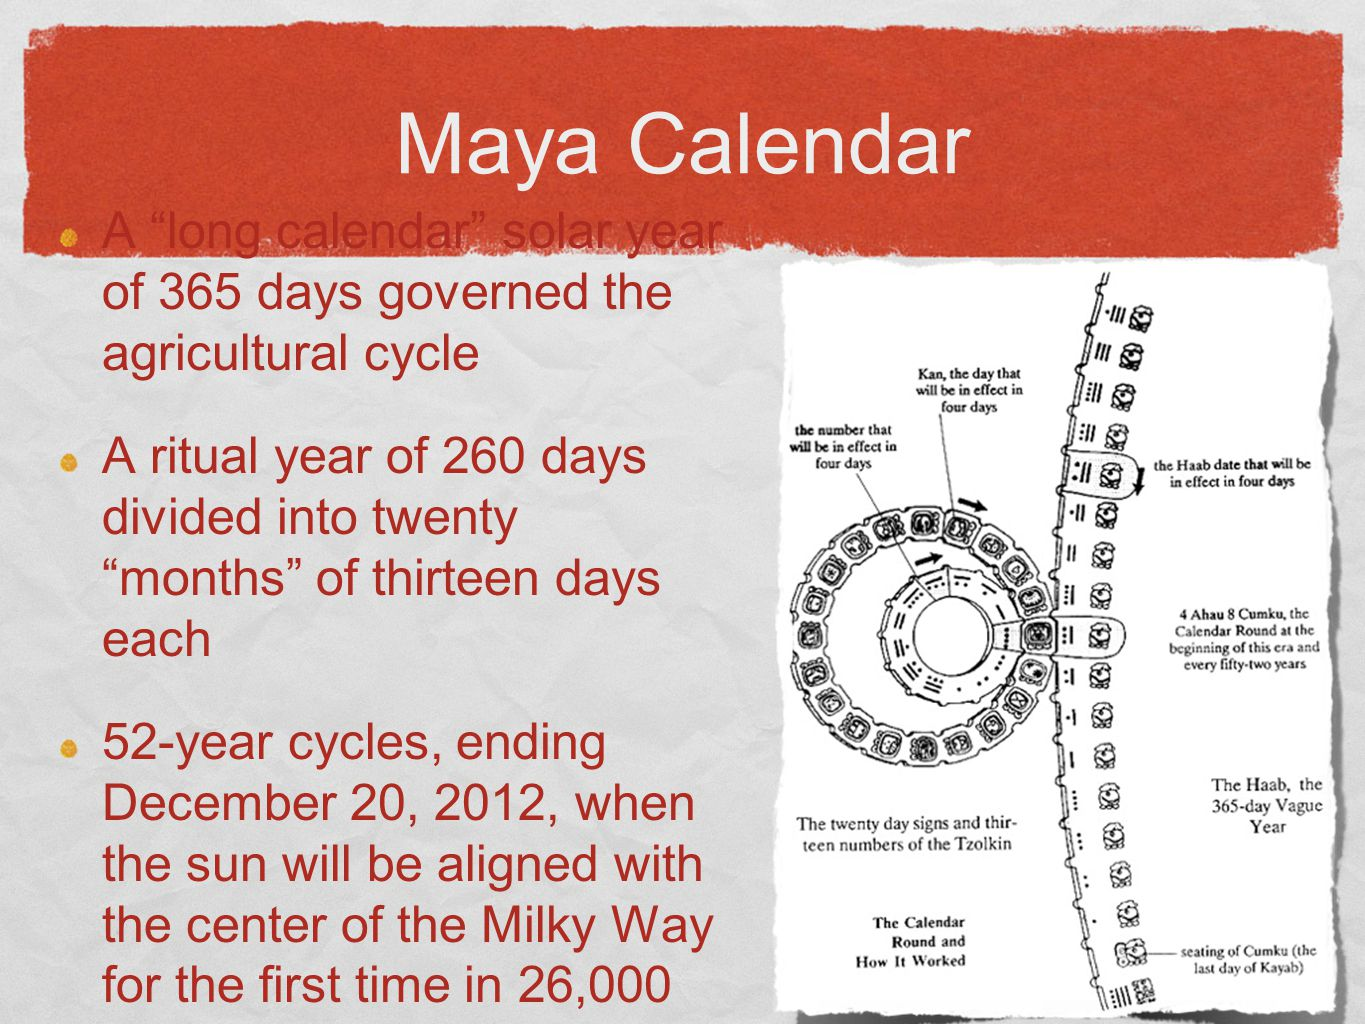 Maya Calendar A long calendar solar year of 365 days governed the agricultural cycle.